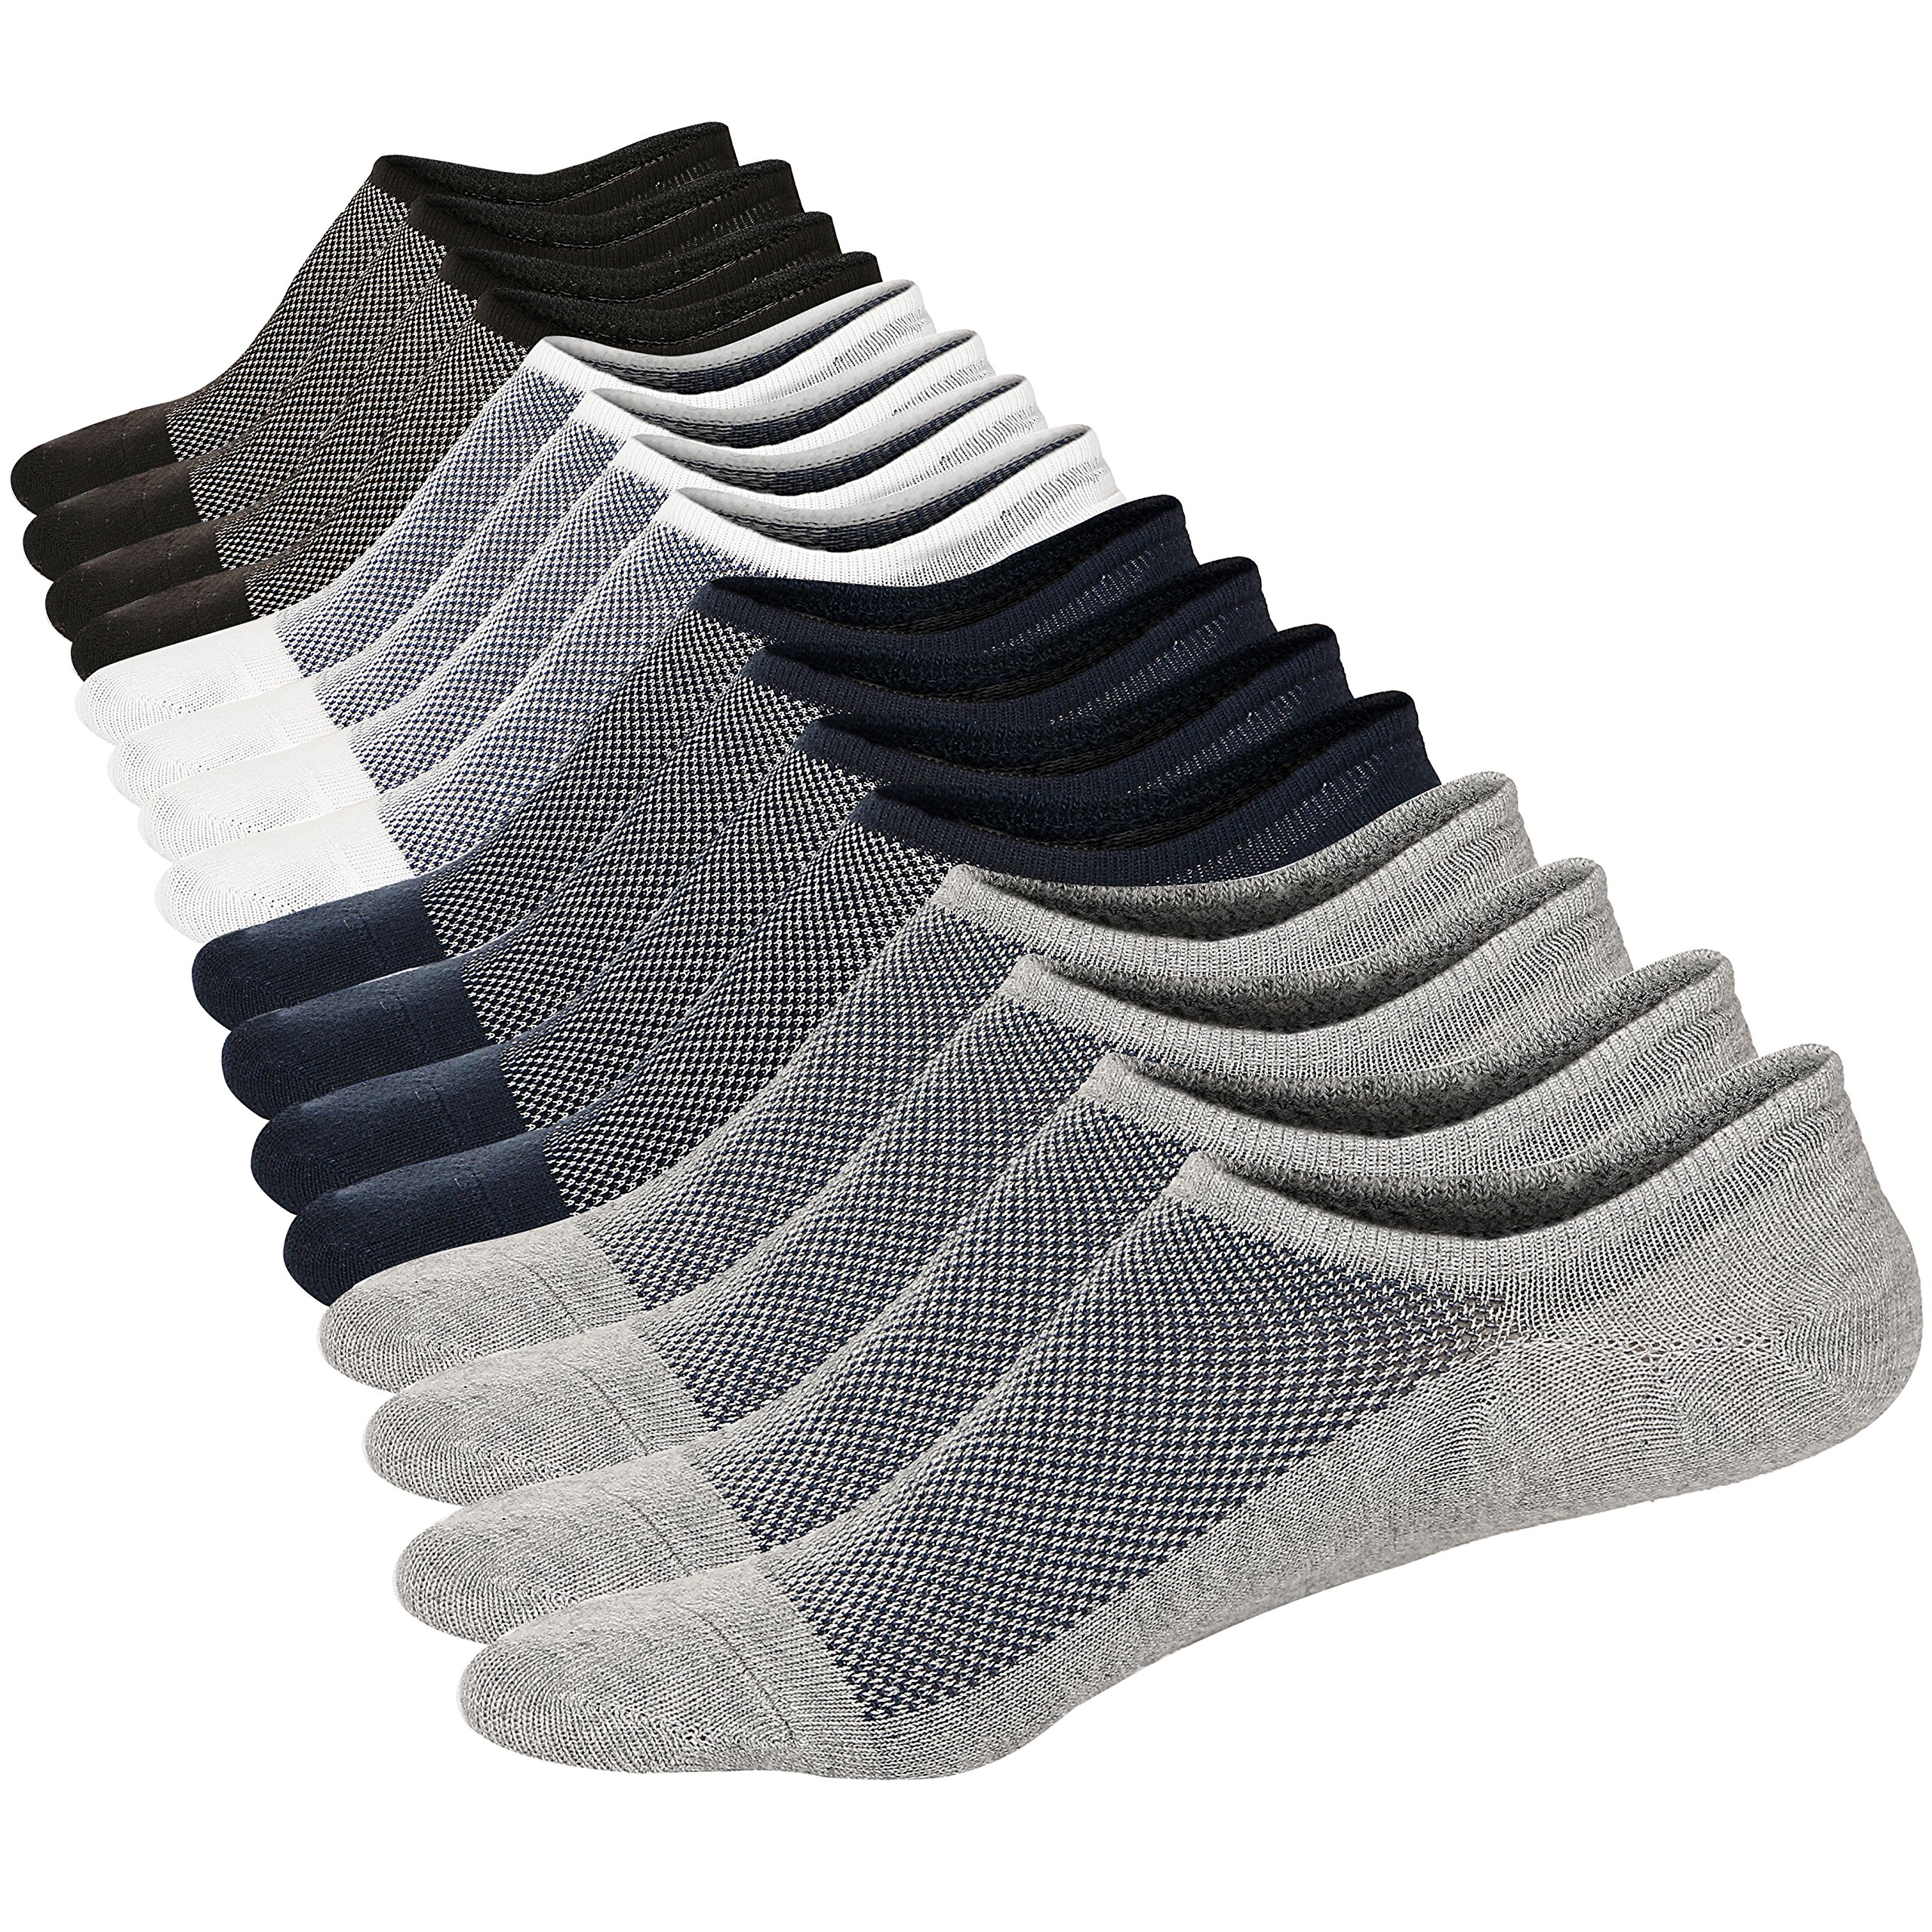 M&Z No Show Ankle Low Cut 8 Pairs Socks Mens/Womens Cotton Invisible Mesh Top Durable Toe Casual Non-Slip Socks Size M by Mottee&Zconia